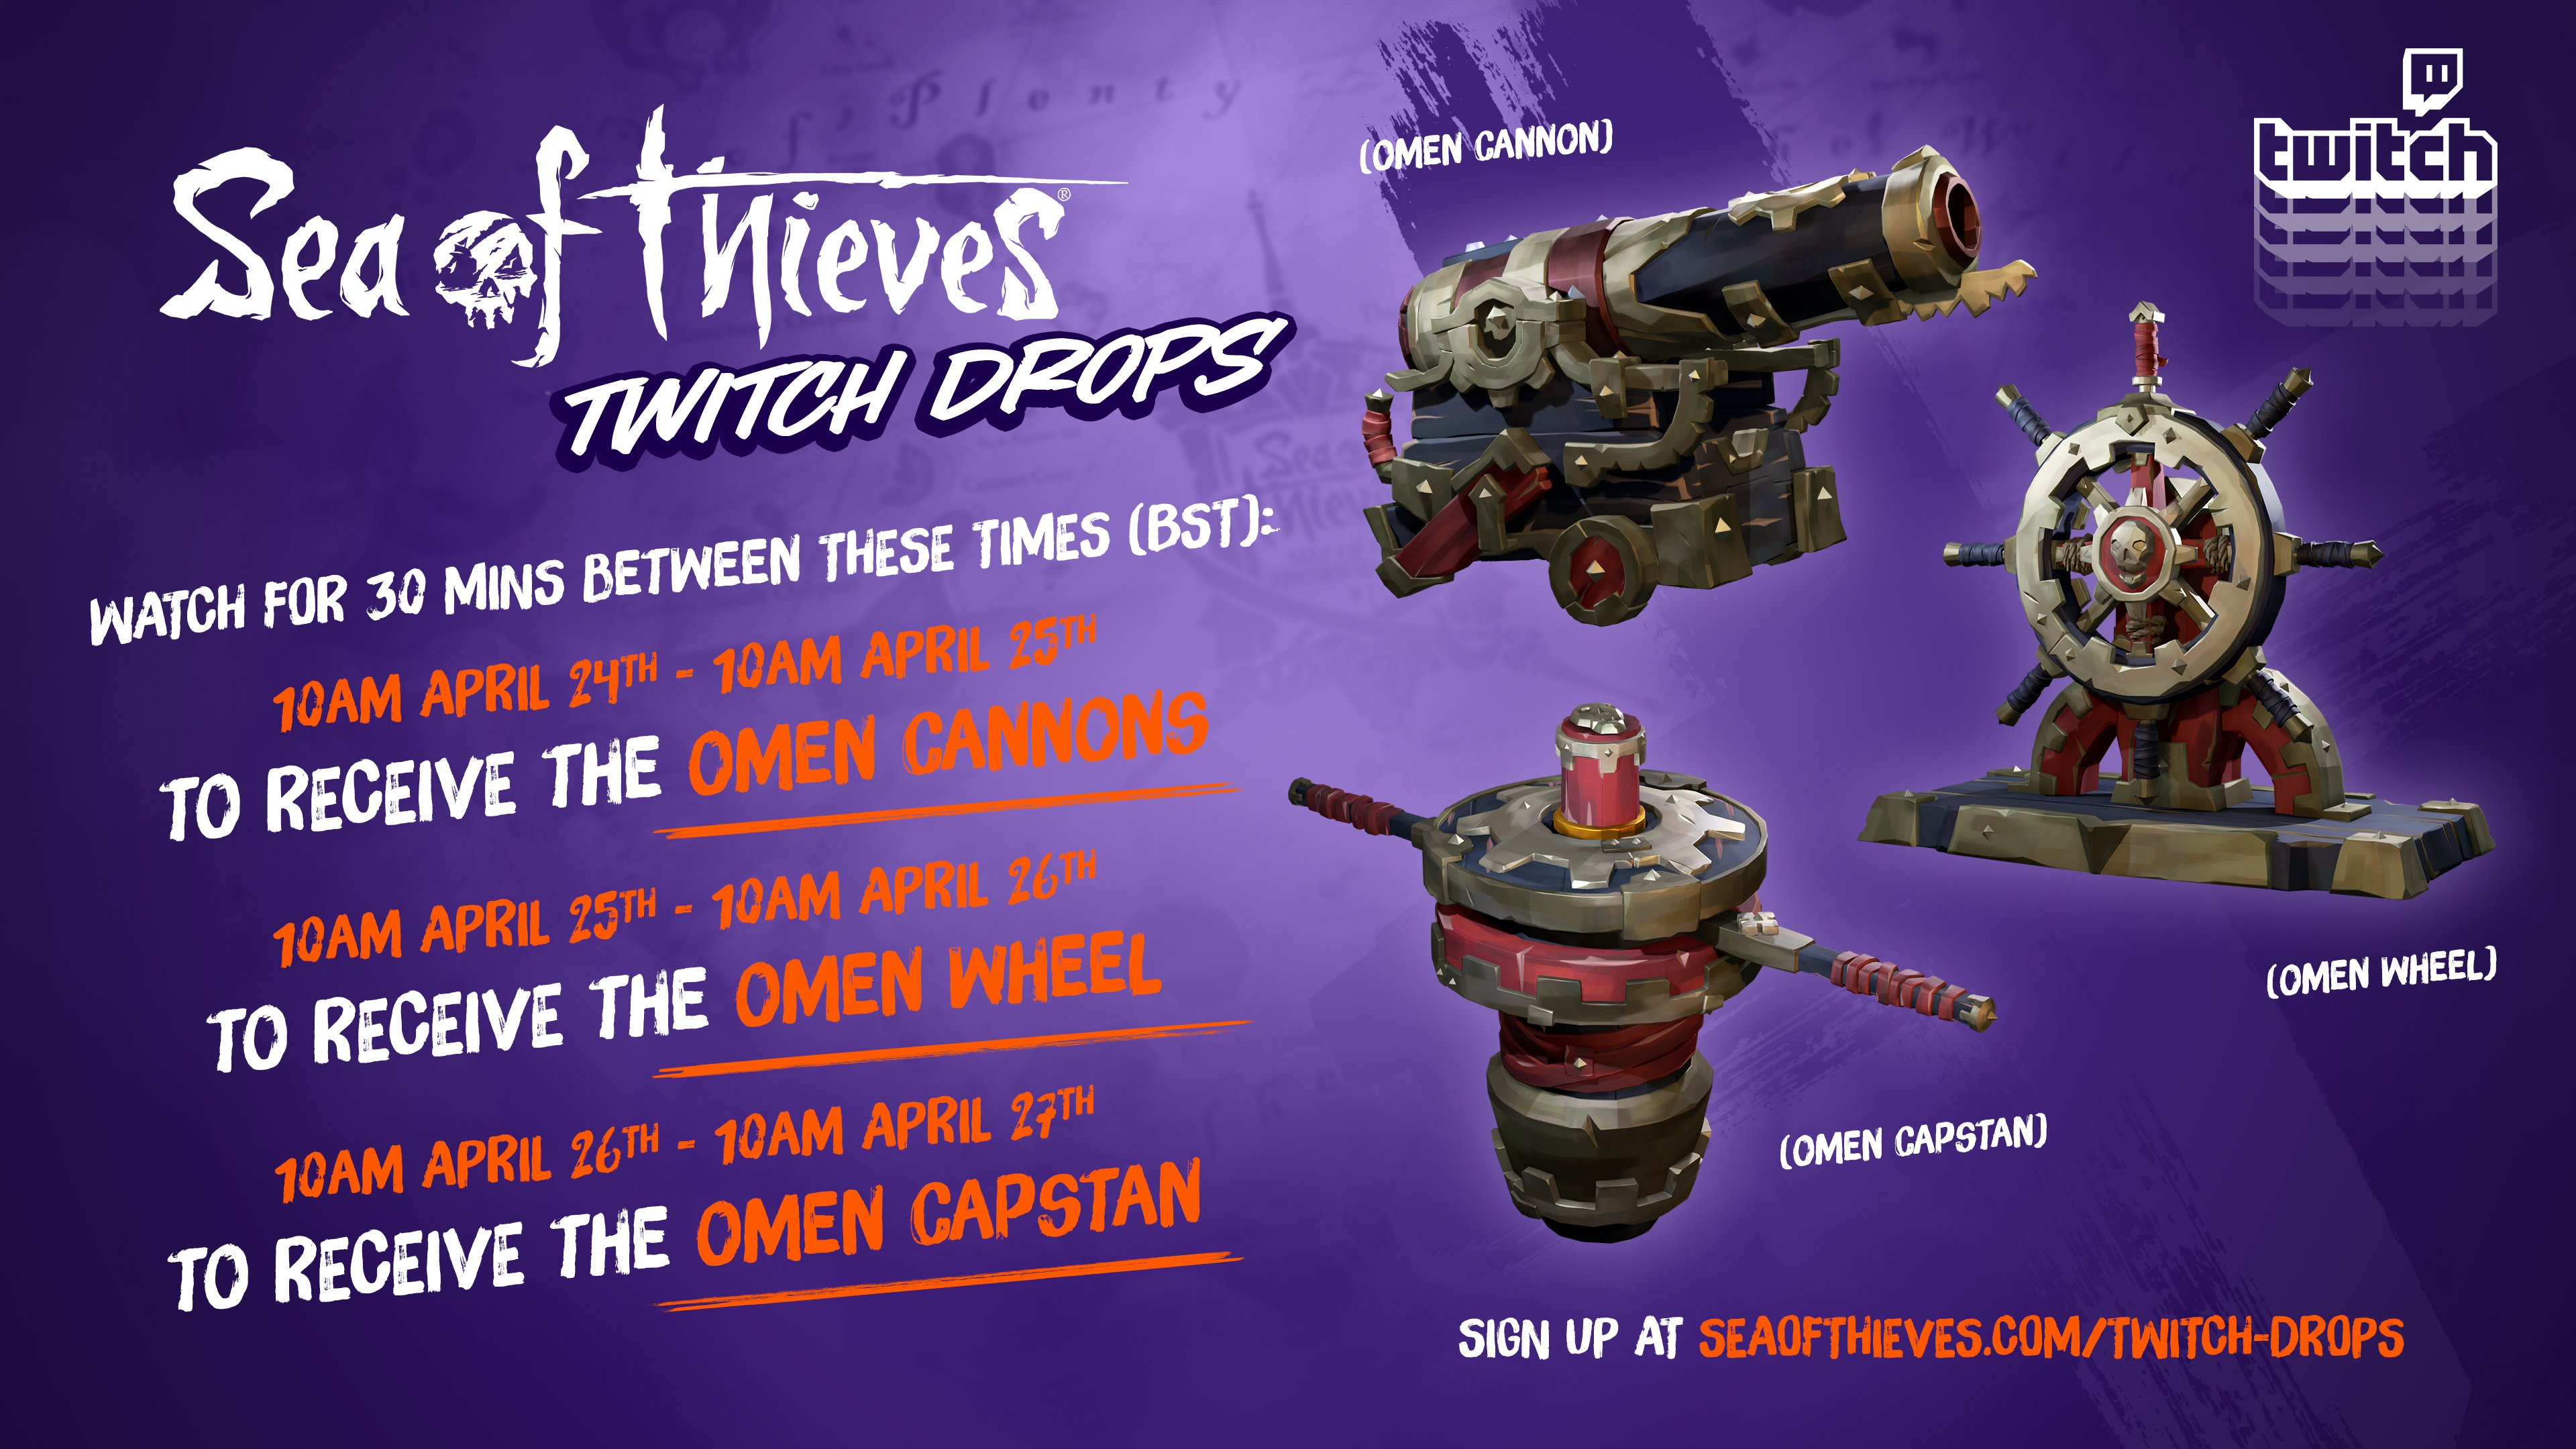 sea of thieves omen shipset Twitch Drops